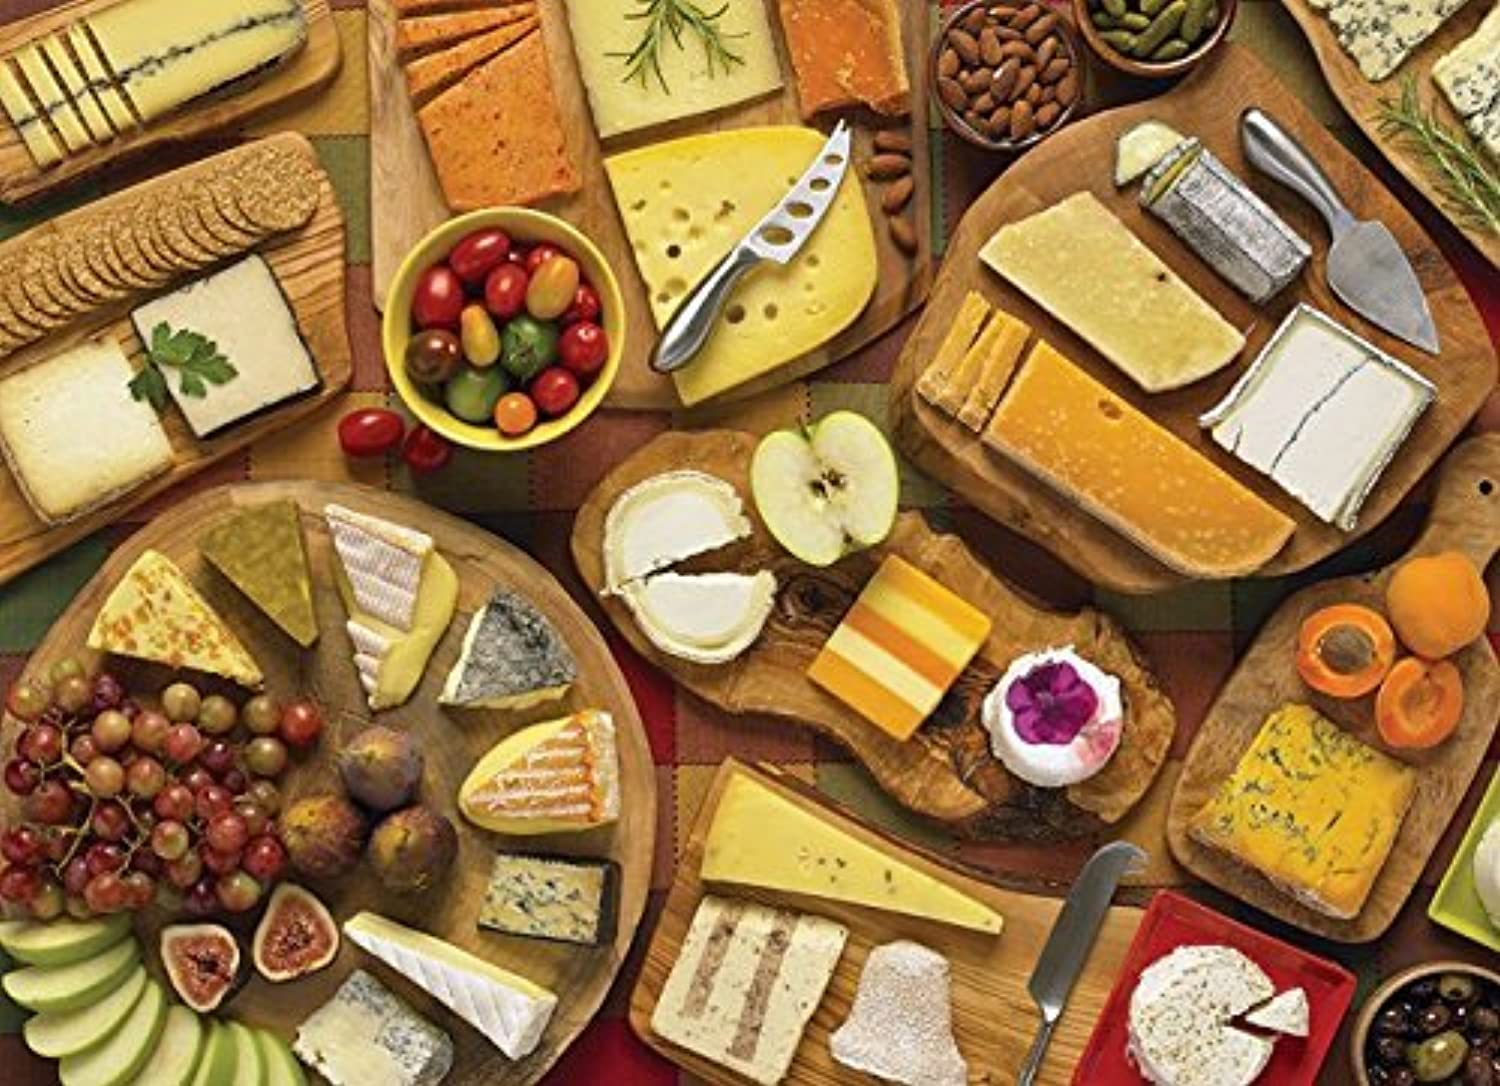 More Cheese Please by Cobble Hill   Outset Media